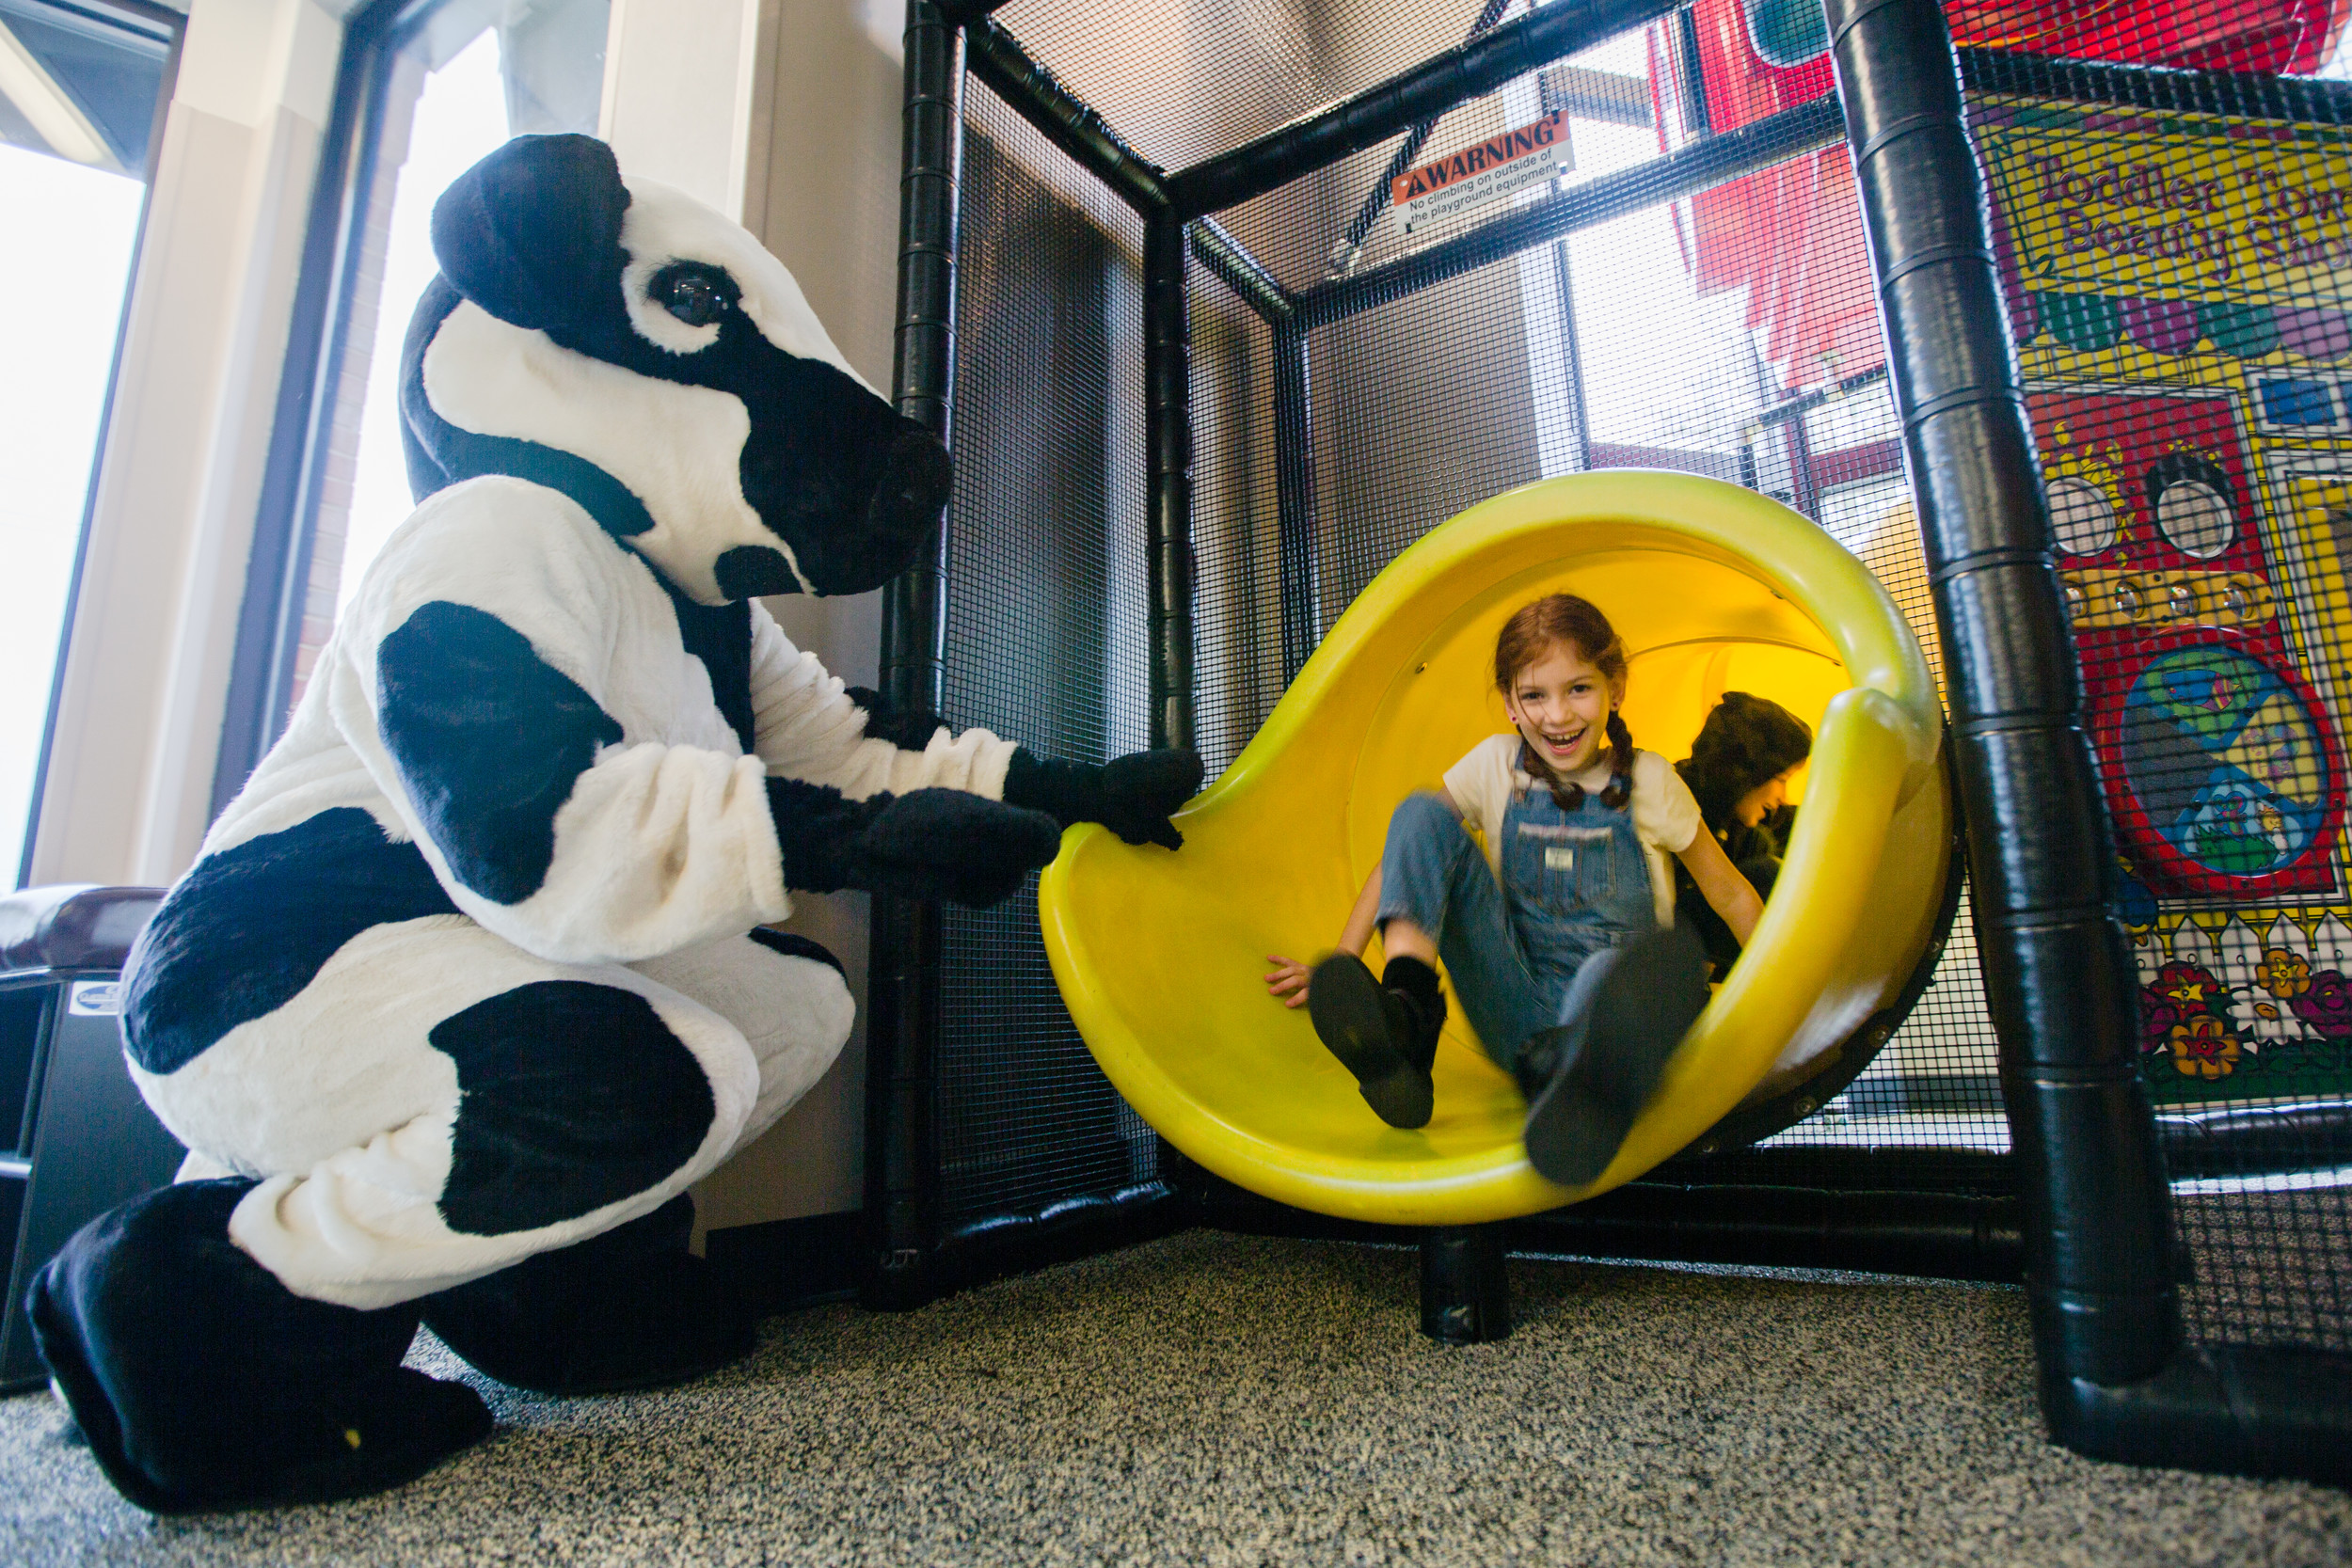 River Stewart comes down the slide in the play place at the newly re-opened Chickfila on Broad Street.